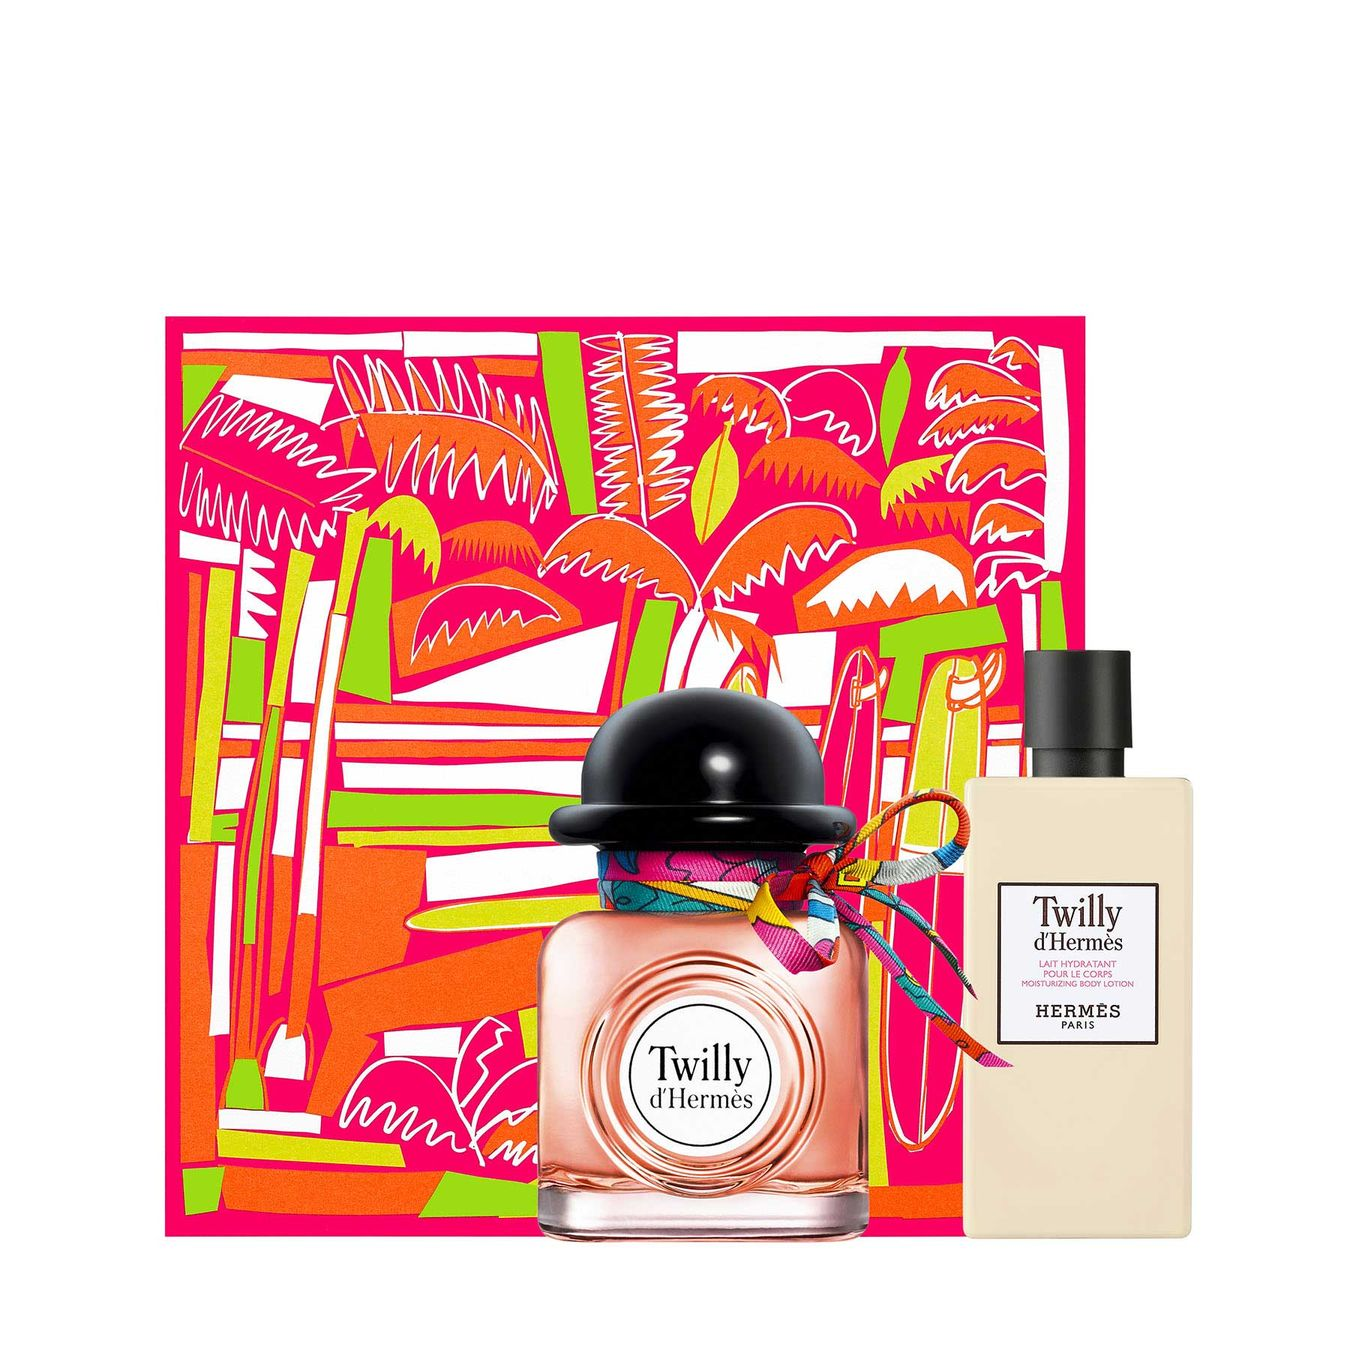 D'hermès ParfumerieHermès Edpv50ml Import Twilly Set H29IWEDY